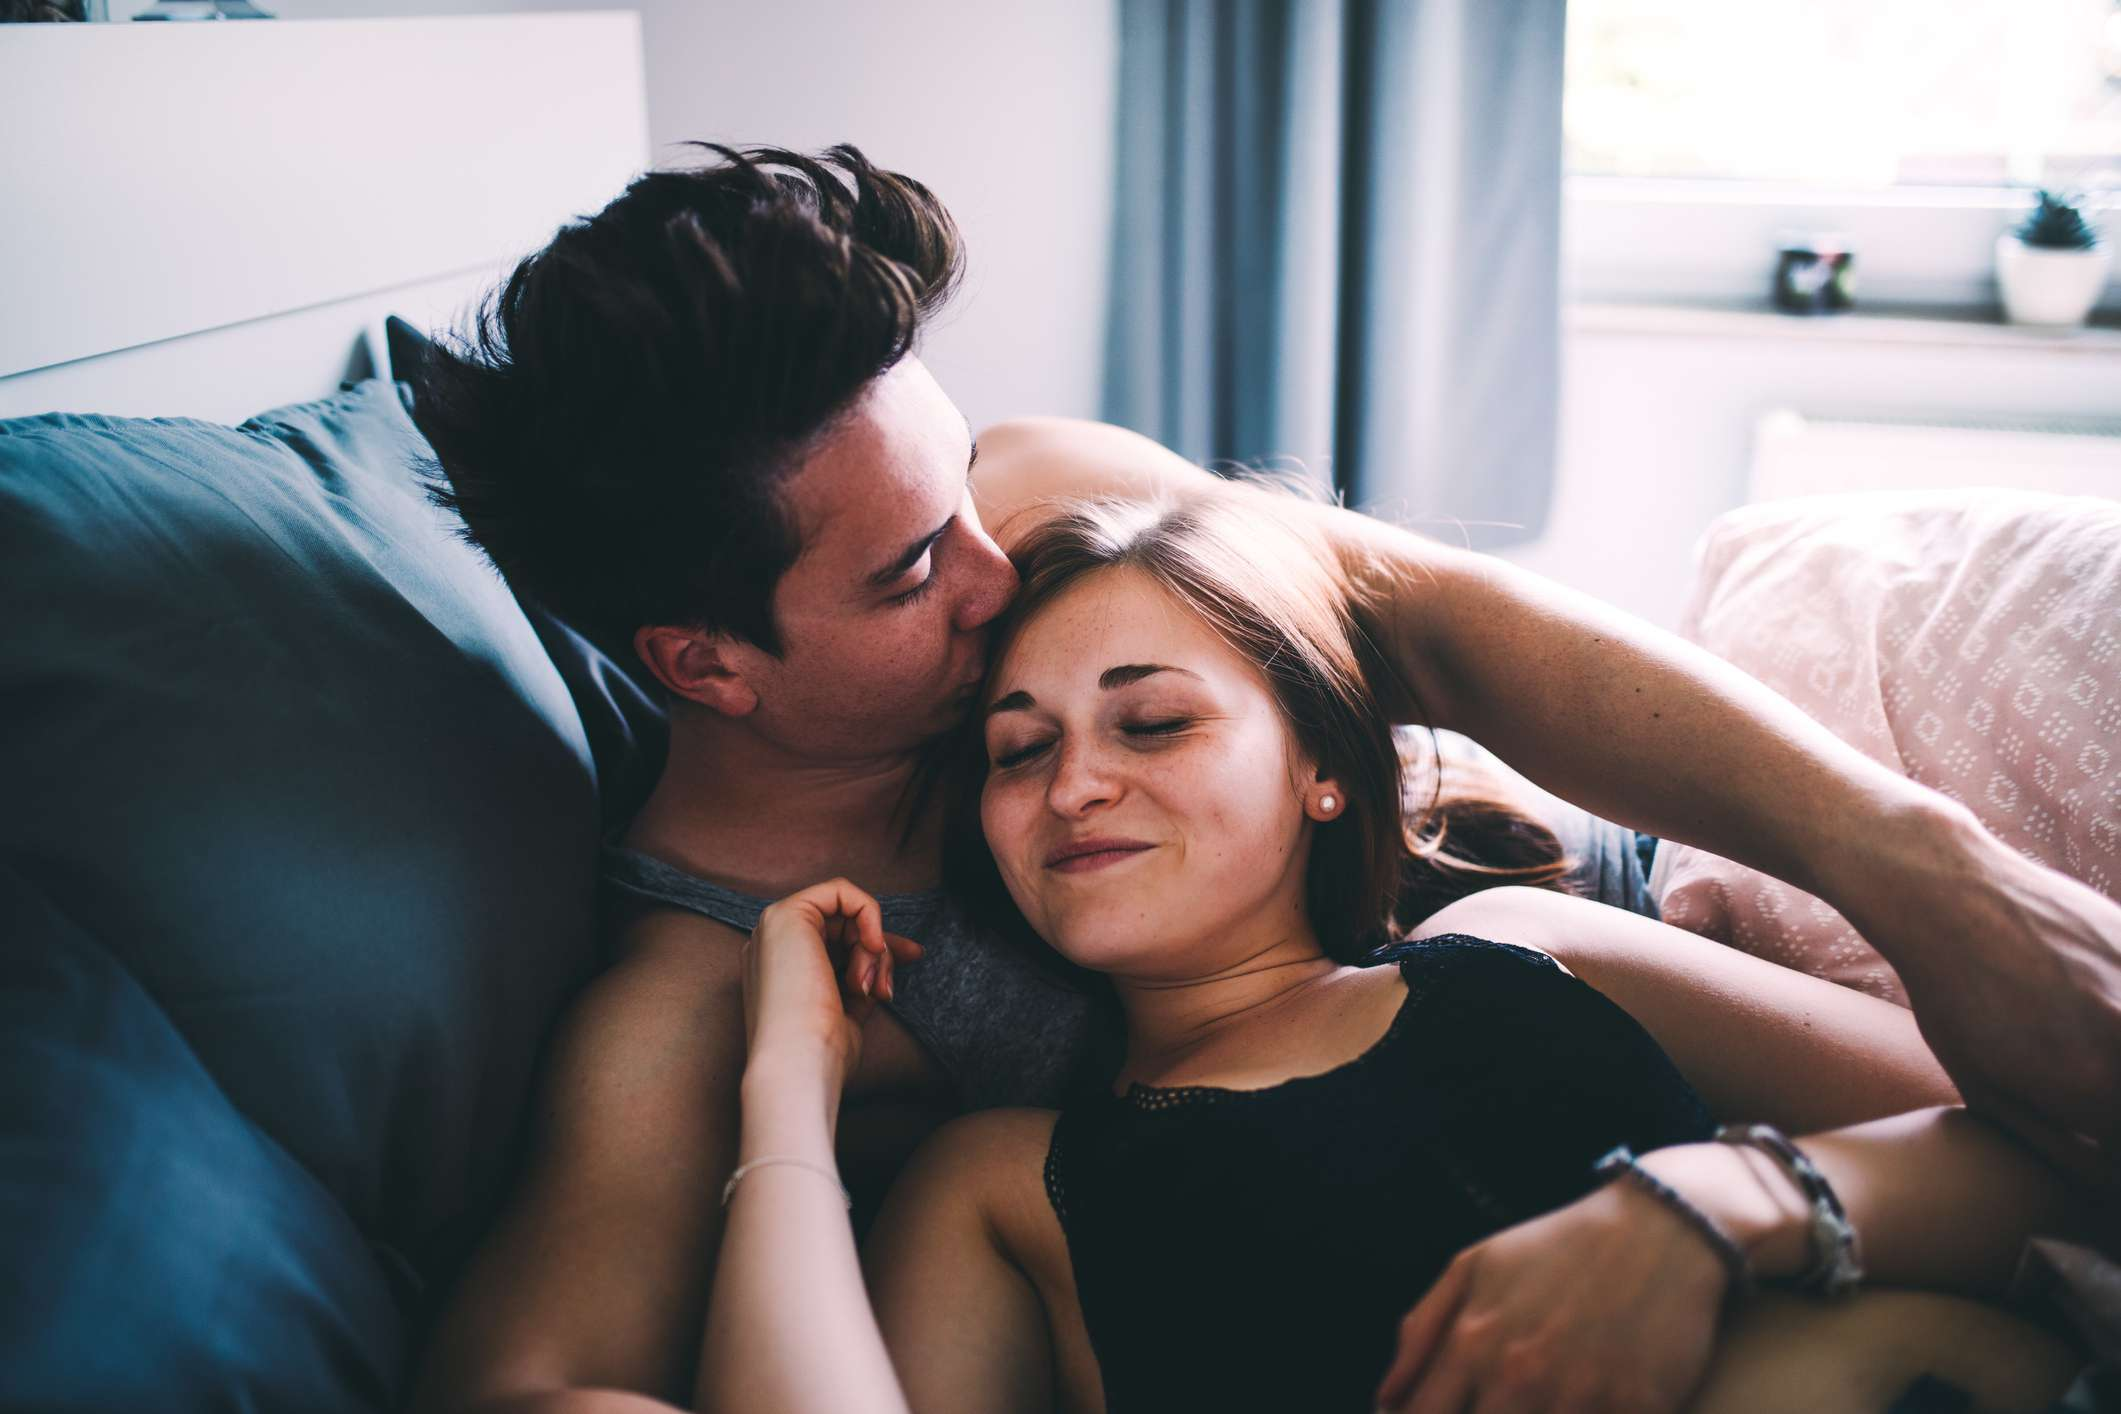 Young man kissing a woman's forehead in bed